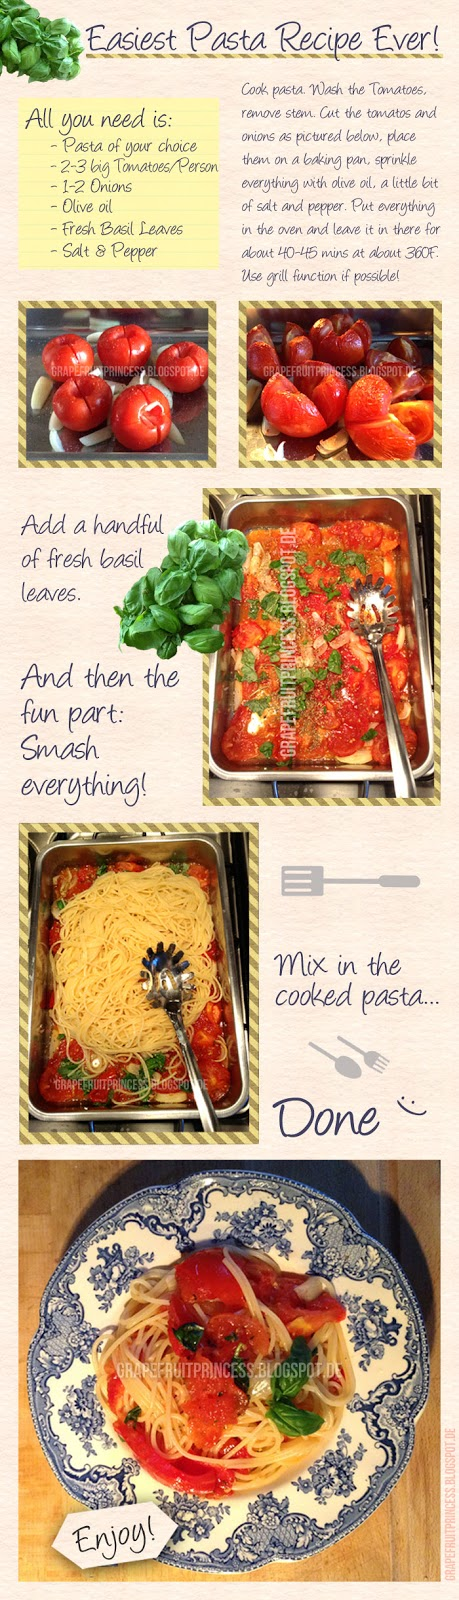 Easy Pasta Recipe, Vegan, clean eating, italian food, printable, basil, tomatoes, onions,